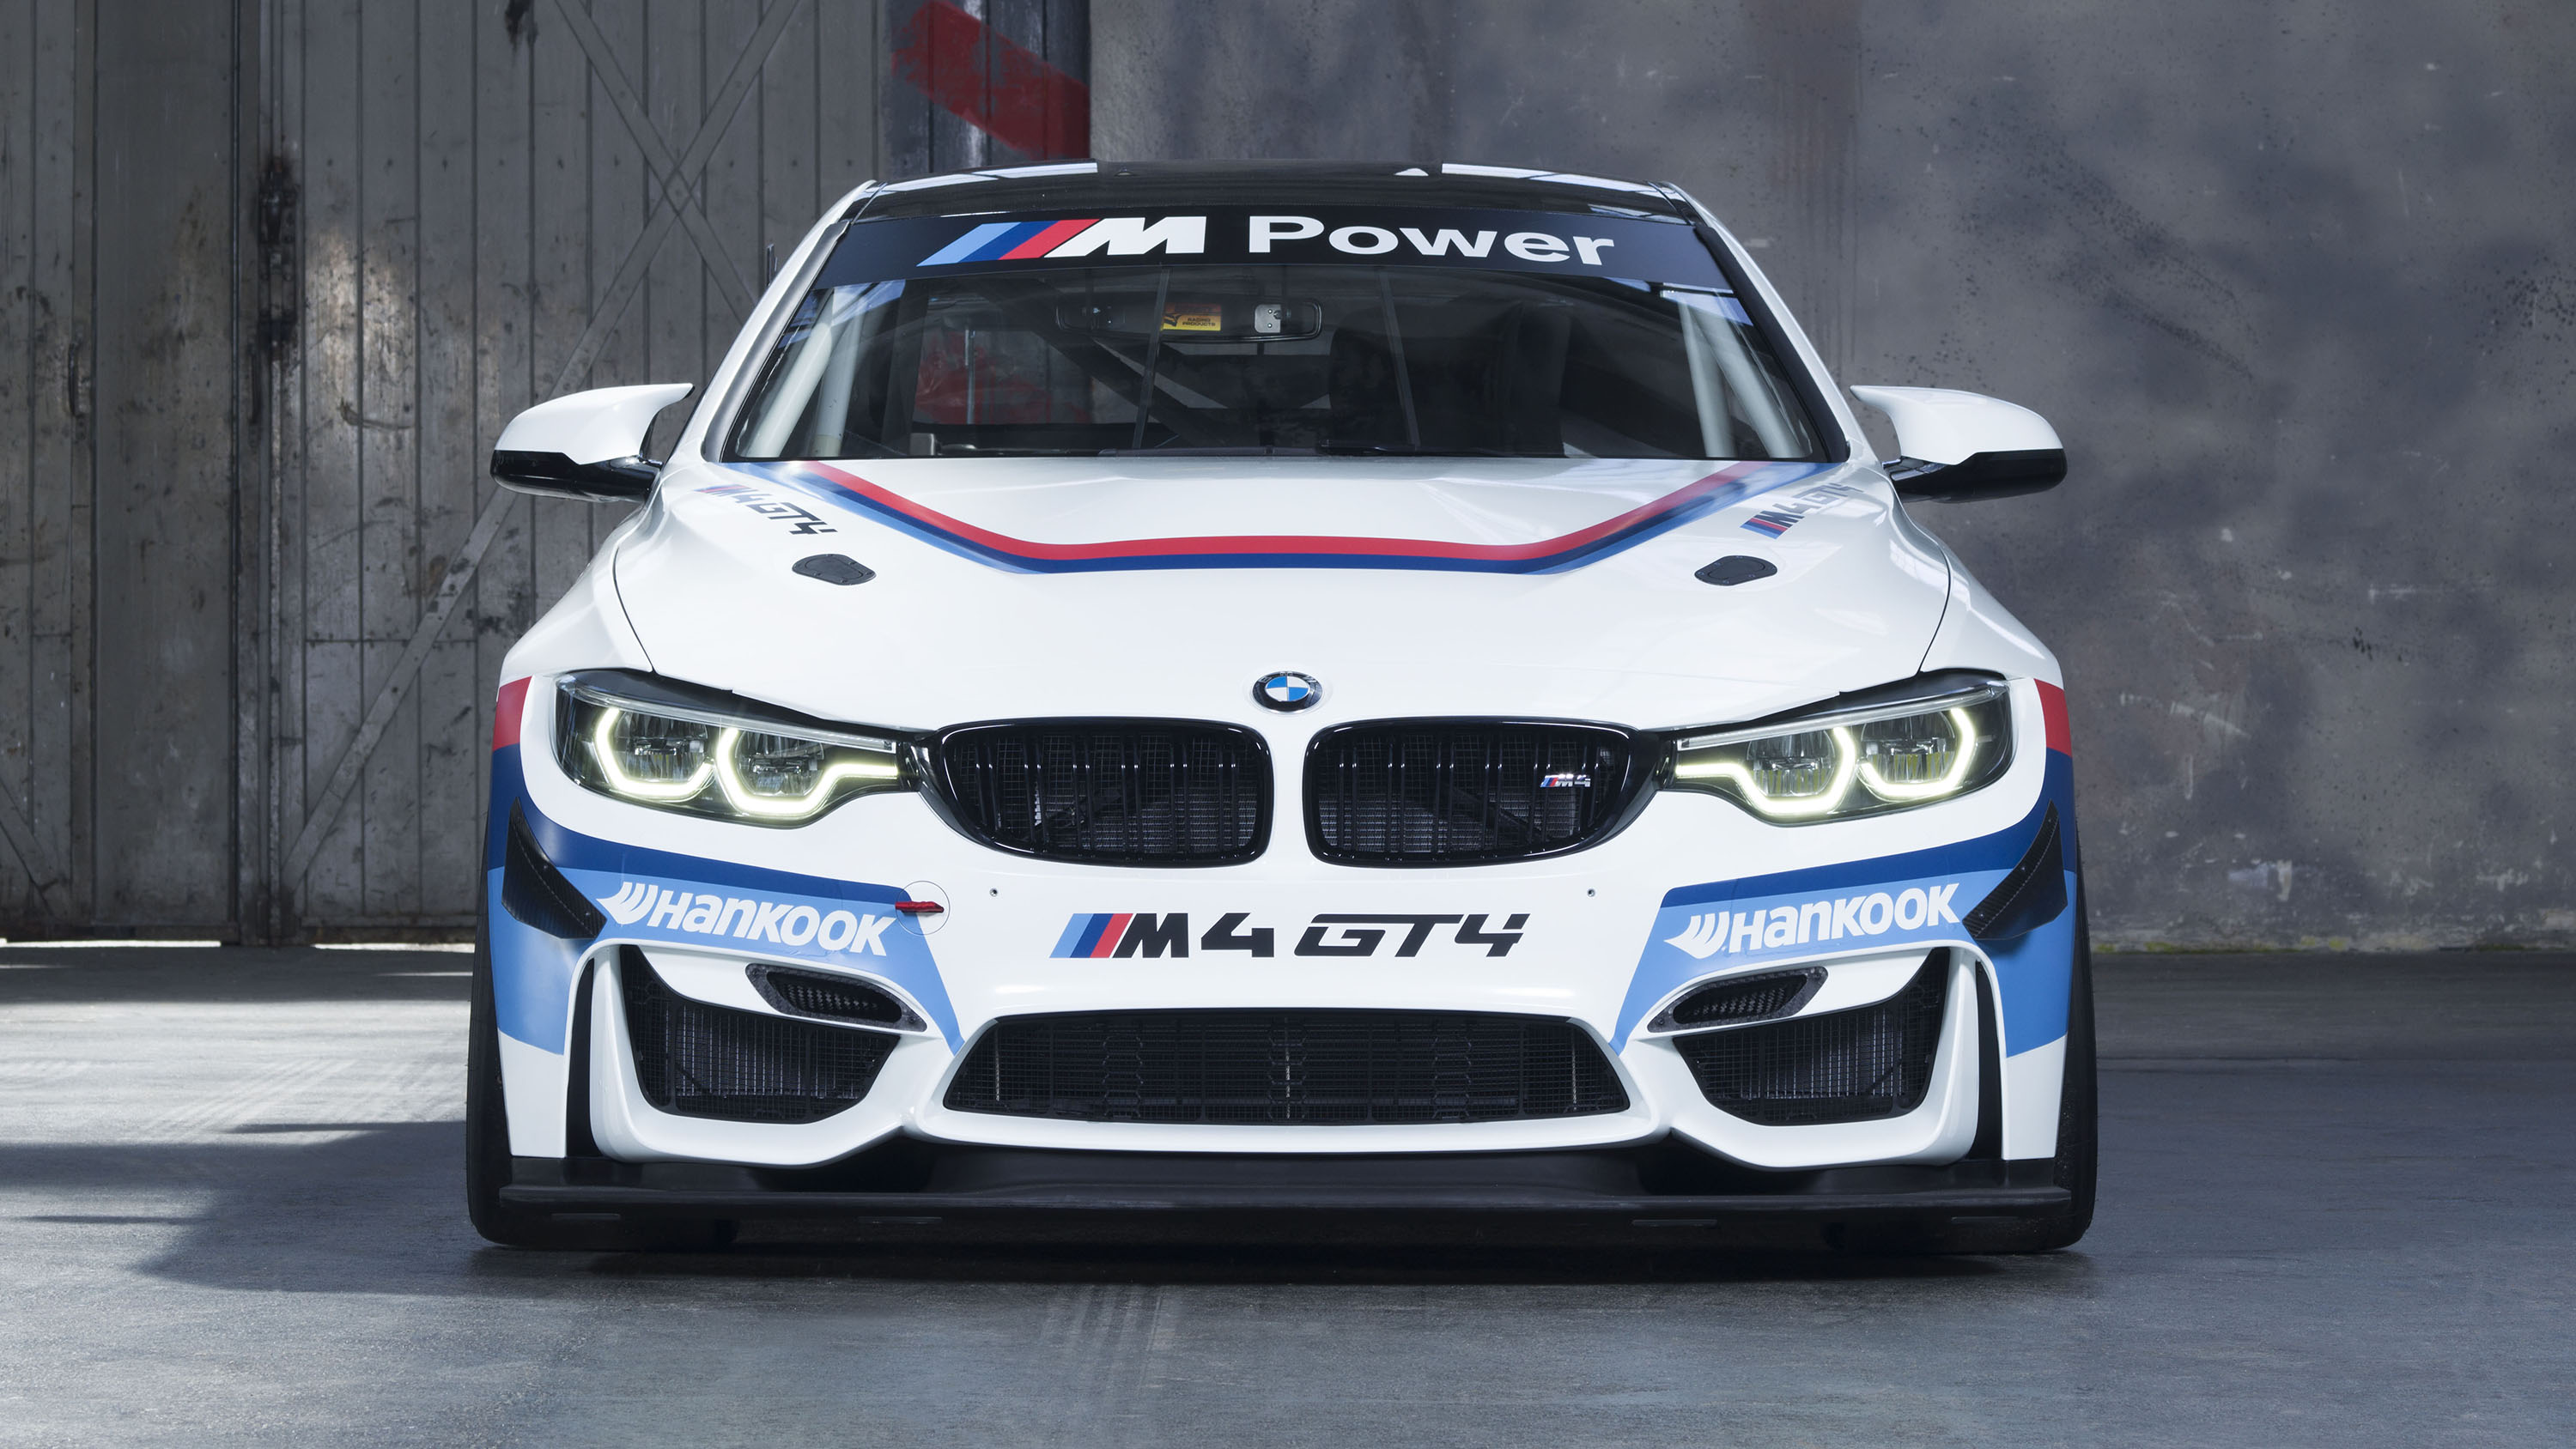 BMW M4 Coupe GT4 front